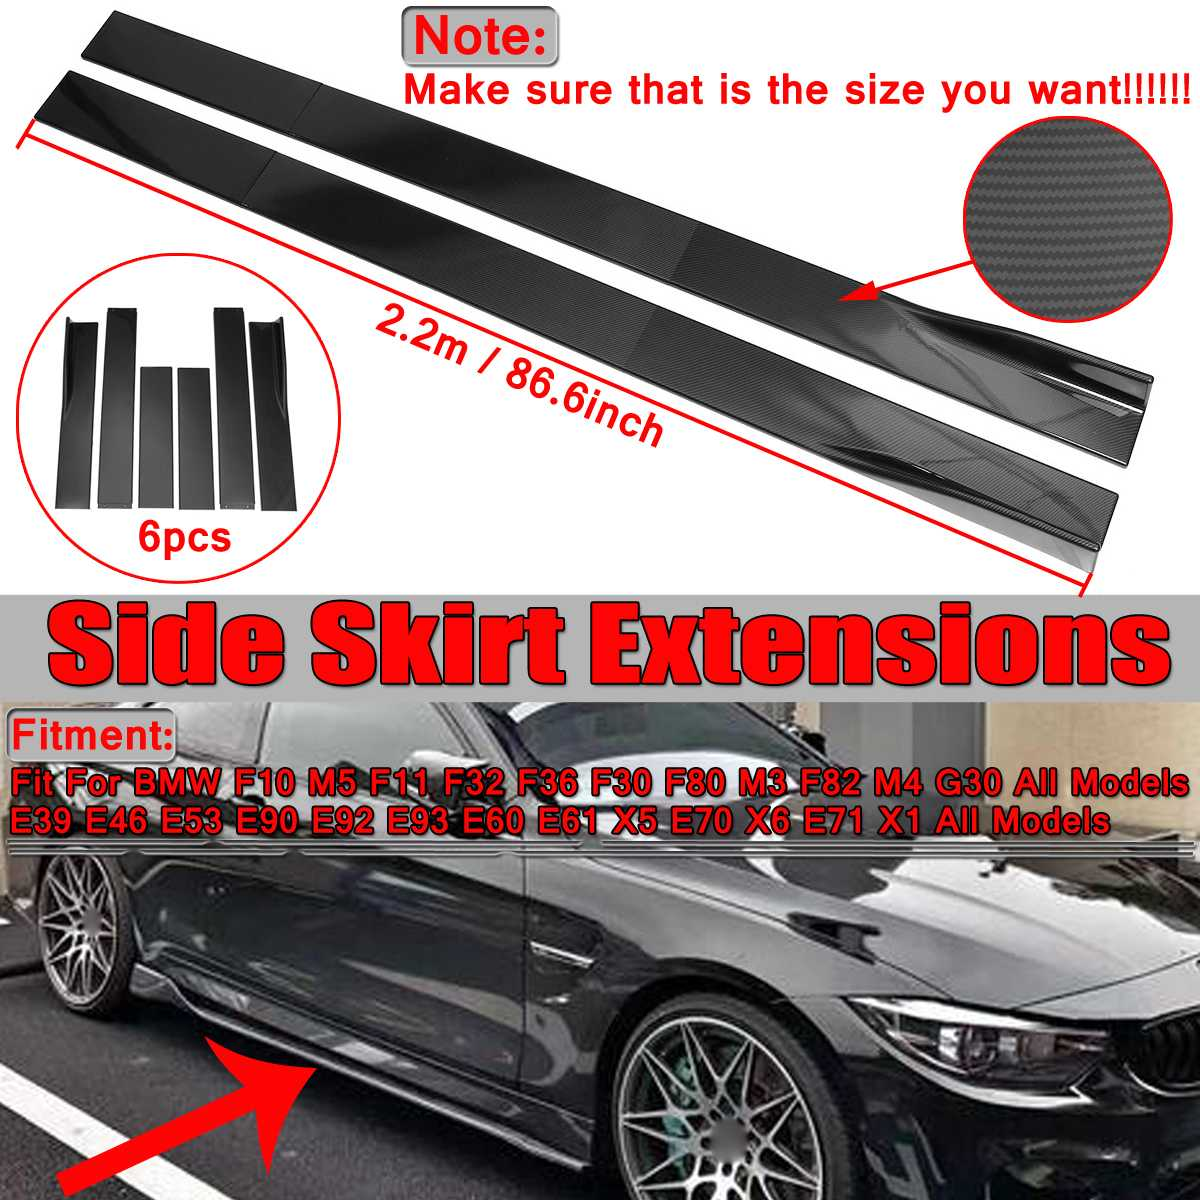 2.2m Carbon Fiber Loook/Black Car Side Skirts Extensions Splitters Rocker For <font><b>BMW</b></font> F30 F80 M3 F82 M4 F32 F36 E90 E92 E93 <font><b>F10</b></font> F11 image